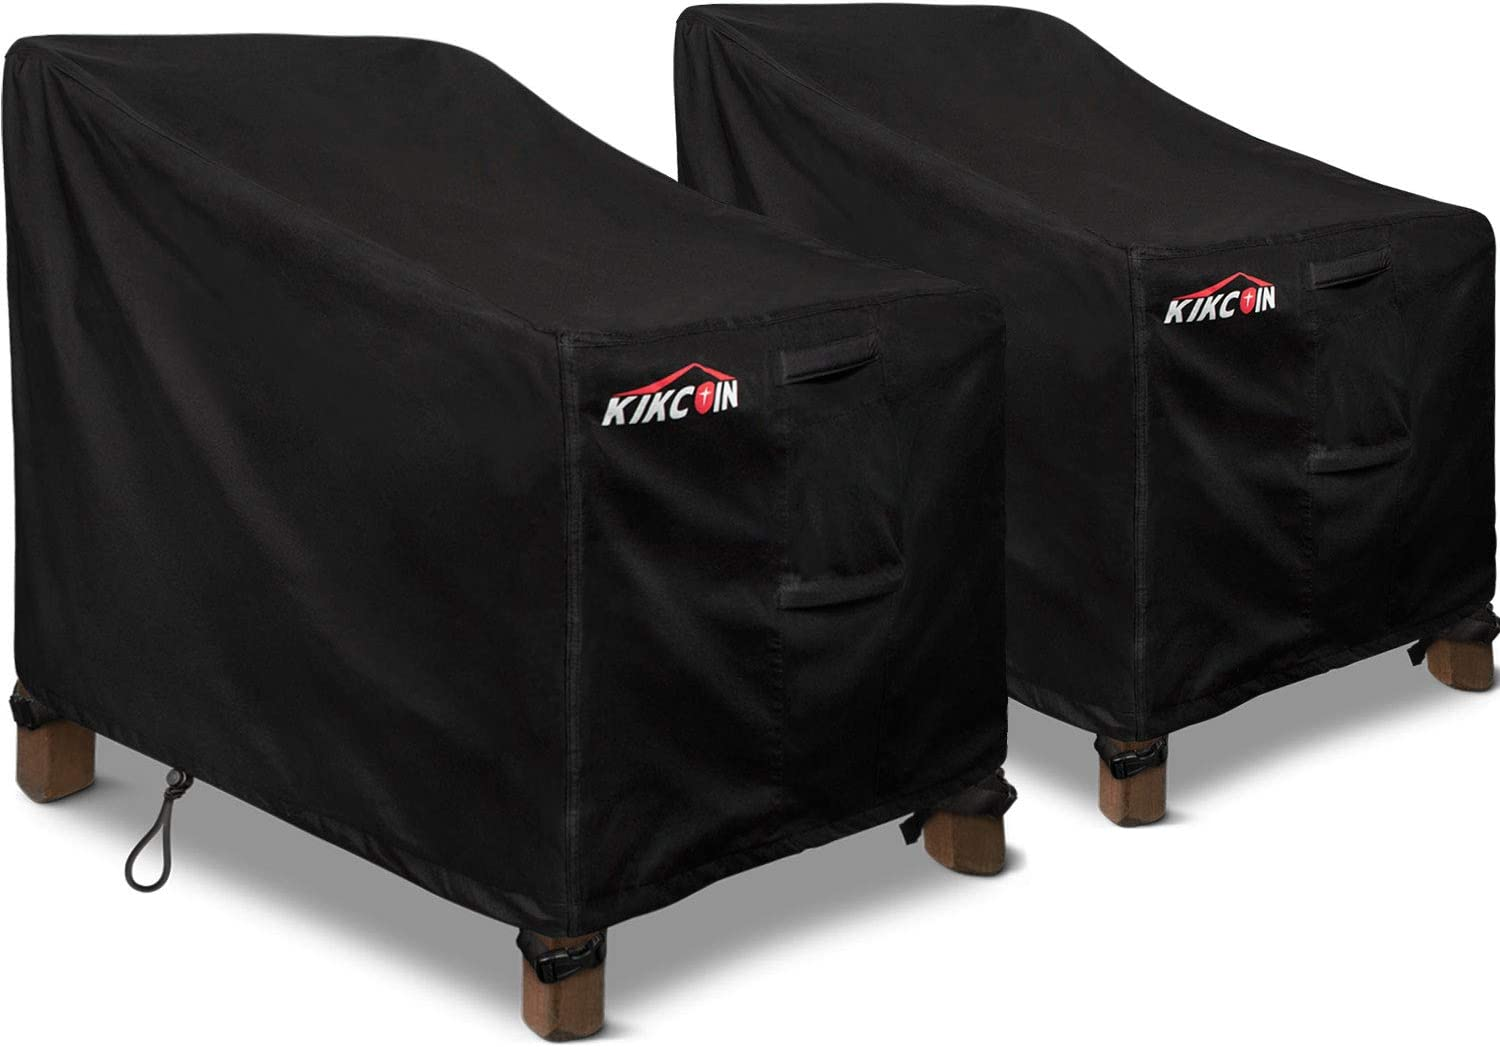 """Kikcoin Patio Chair Covers, 2 Pack Extra Wide Waterproof Outdoor Sofa Cover 37"""" W x 30"""" D x 30"""" H, 600D Heavy Duty with 2 Air Vents for All Weather, Patio Furniture Covers (Black)"""